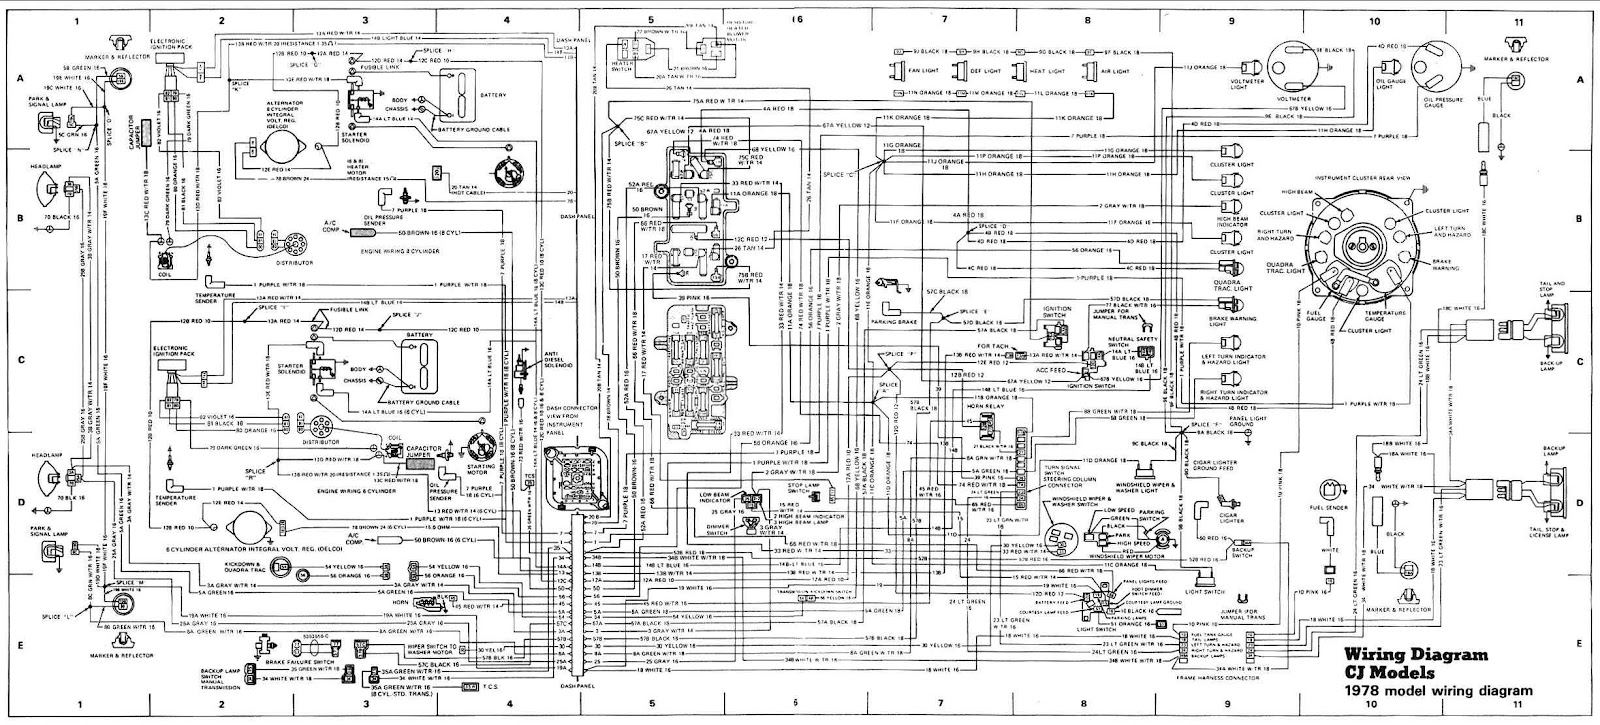 2006 jeep grand cherokee alternator wiring diagram wiring library 2000 jeep wrangler wiring diagram 2006 jeep wiring diagram [ 1600 x 725 Pixel ]